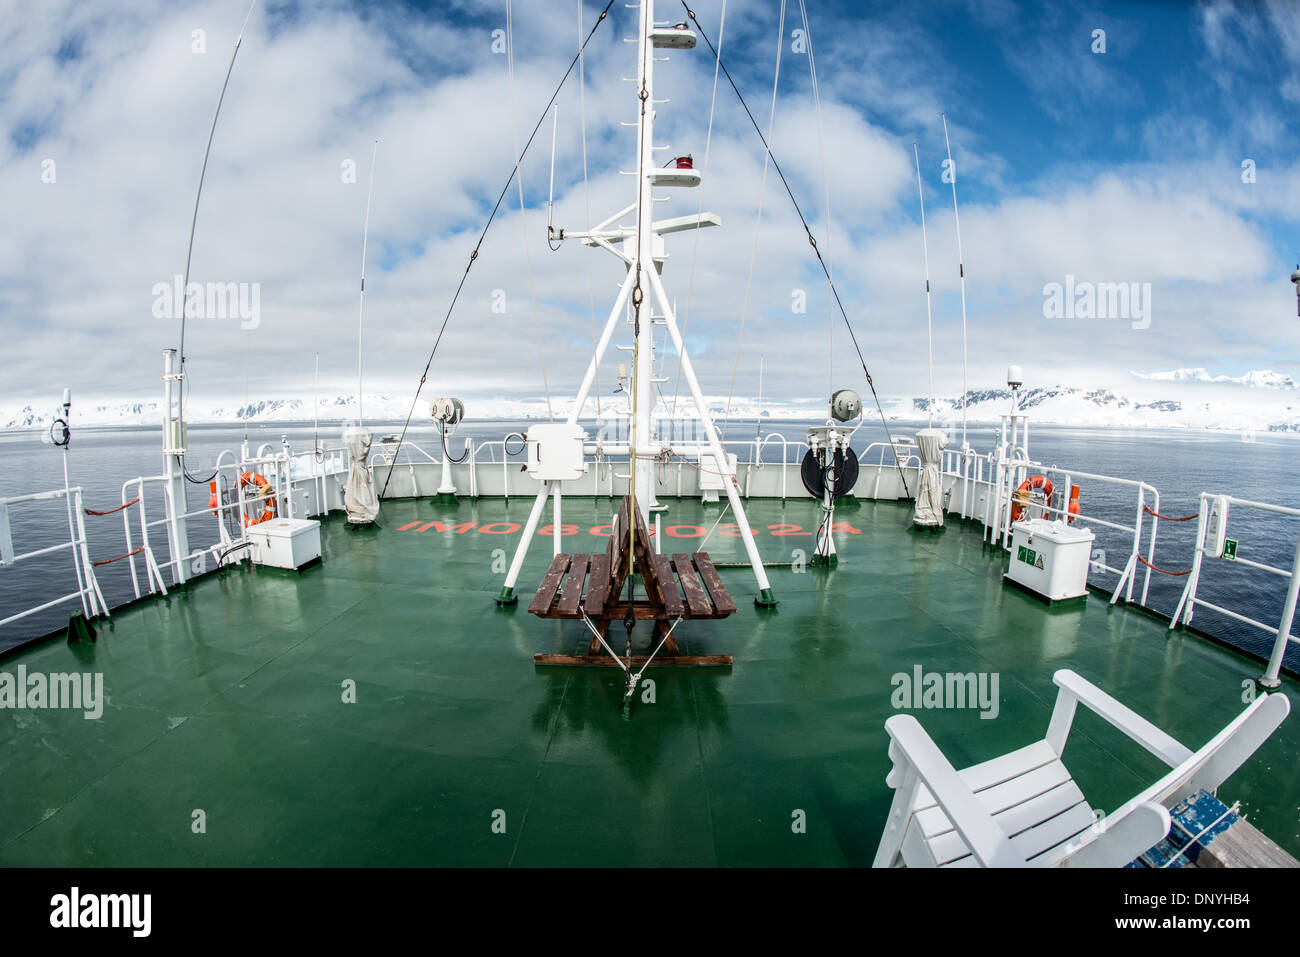 ANTARCTICA - A wide-angle shot of the upper decks of the Polar Pioneer, an Antarctic cruise ship operated by Aurora Expeditions. - Stock Image